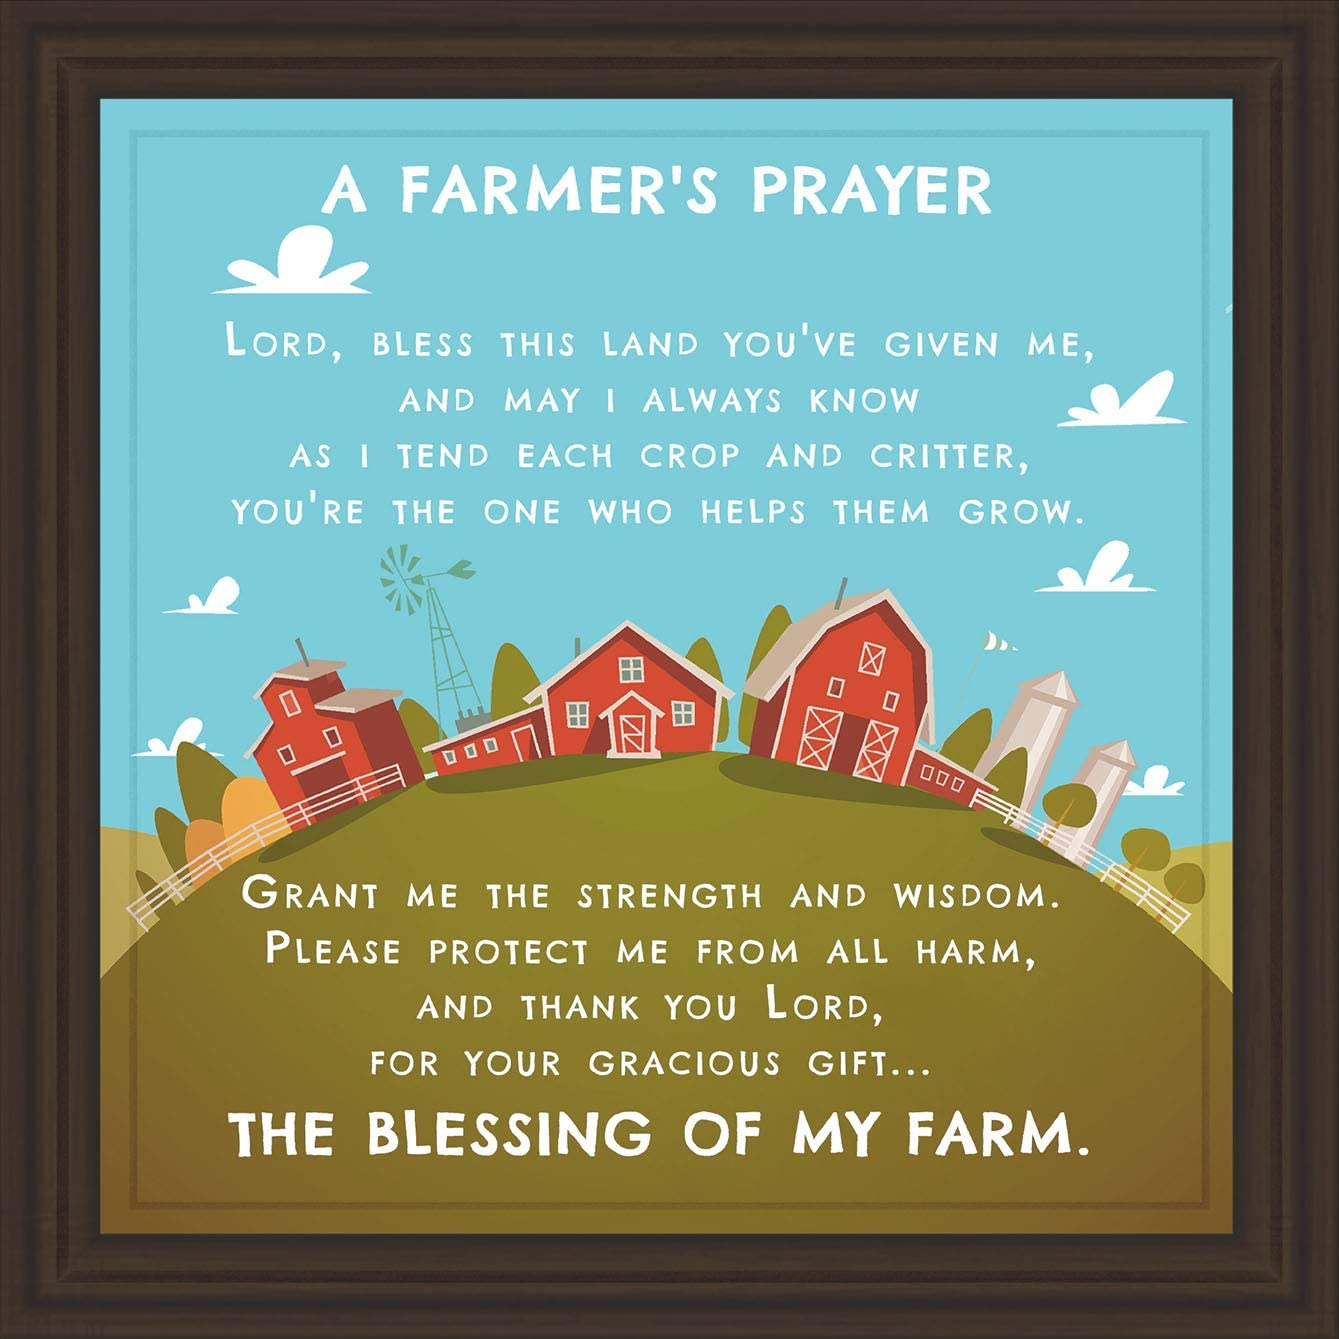 Farmer Gifts | 7x7 Tile Artwork Perfect Farmhouse Decor | Gift Ideas for Farmers | Decorative Art Print for Farm | Living Room, Bedroom, Kitchen, Country Decoration | Custom Rustic Ceramic Wall Print